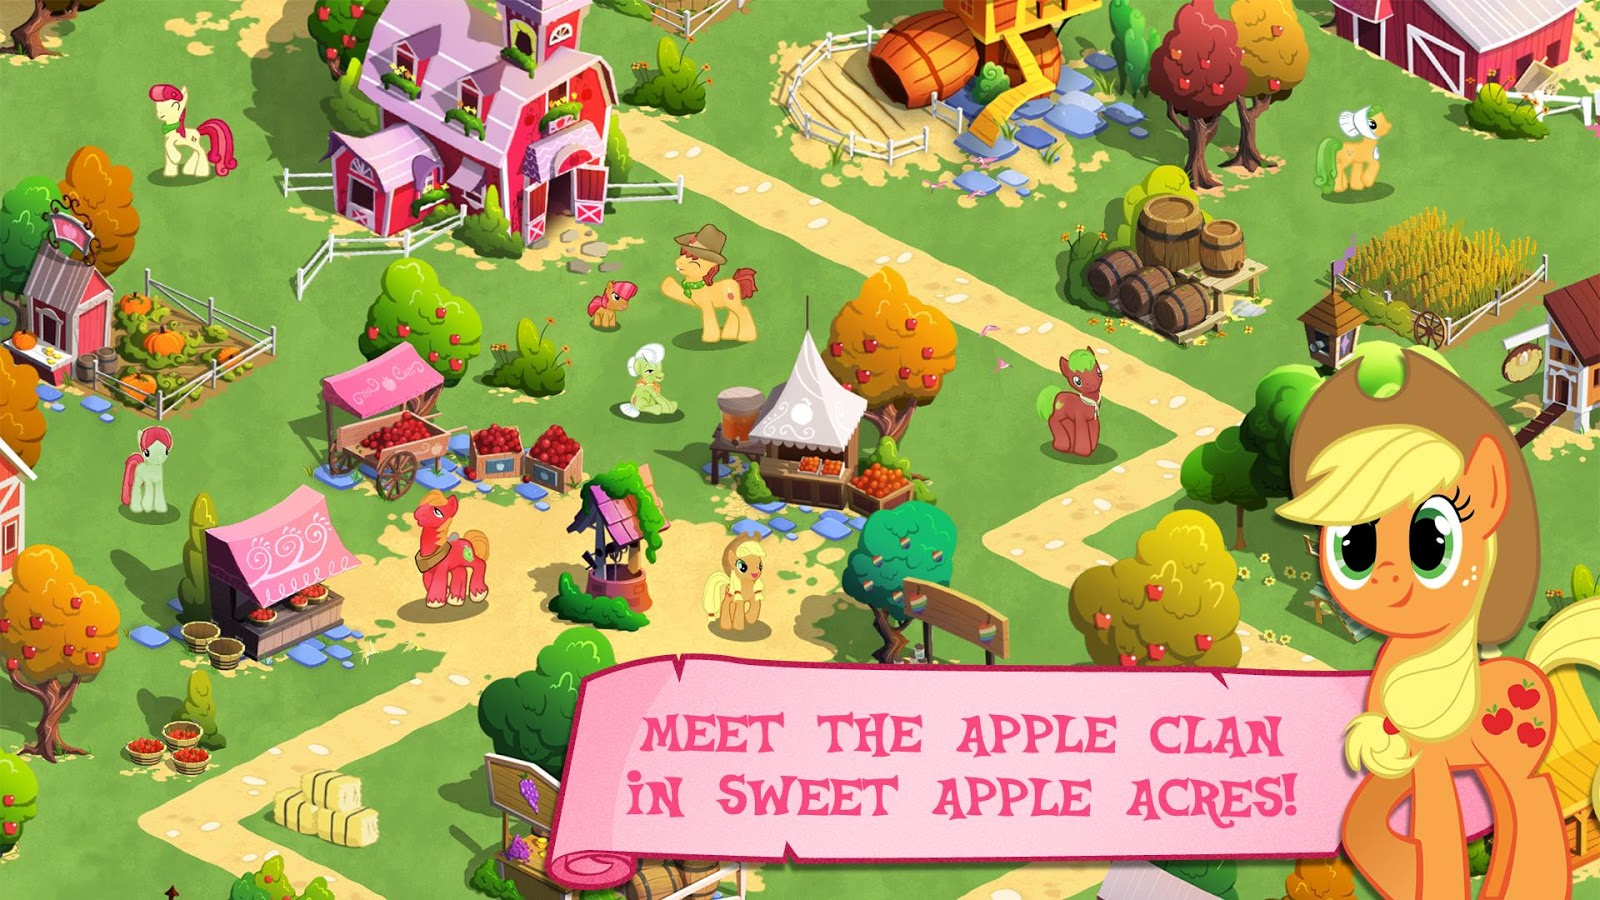 Tải Game My Little Pony Cho Android